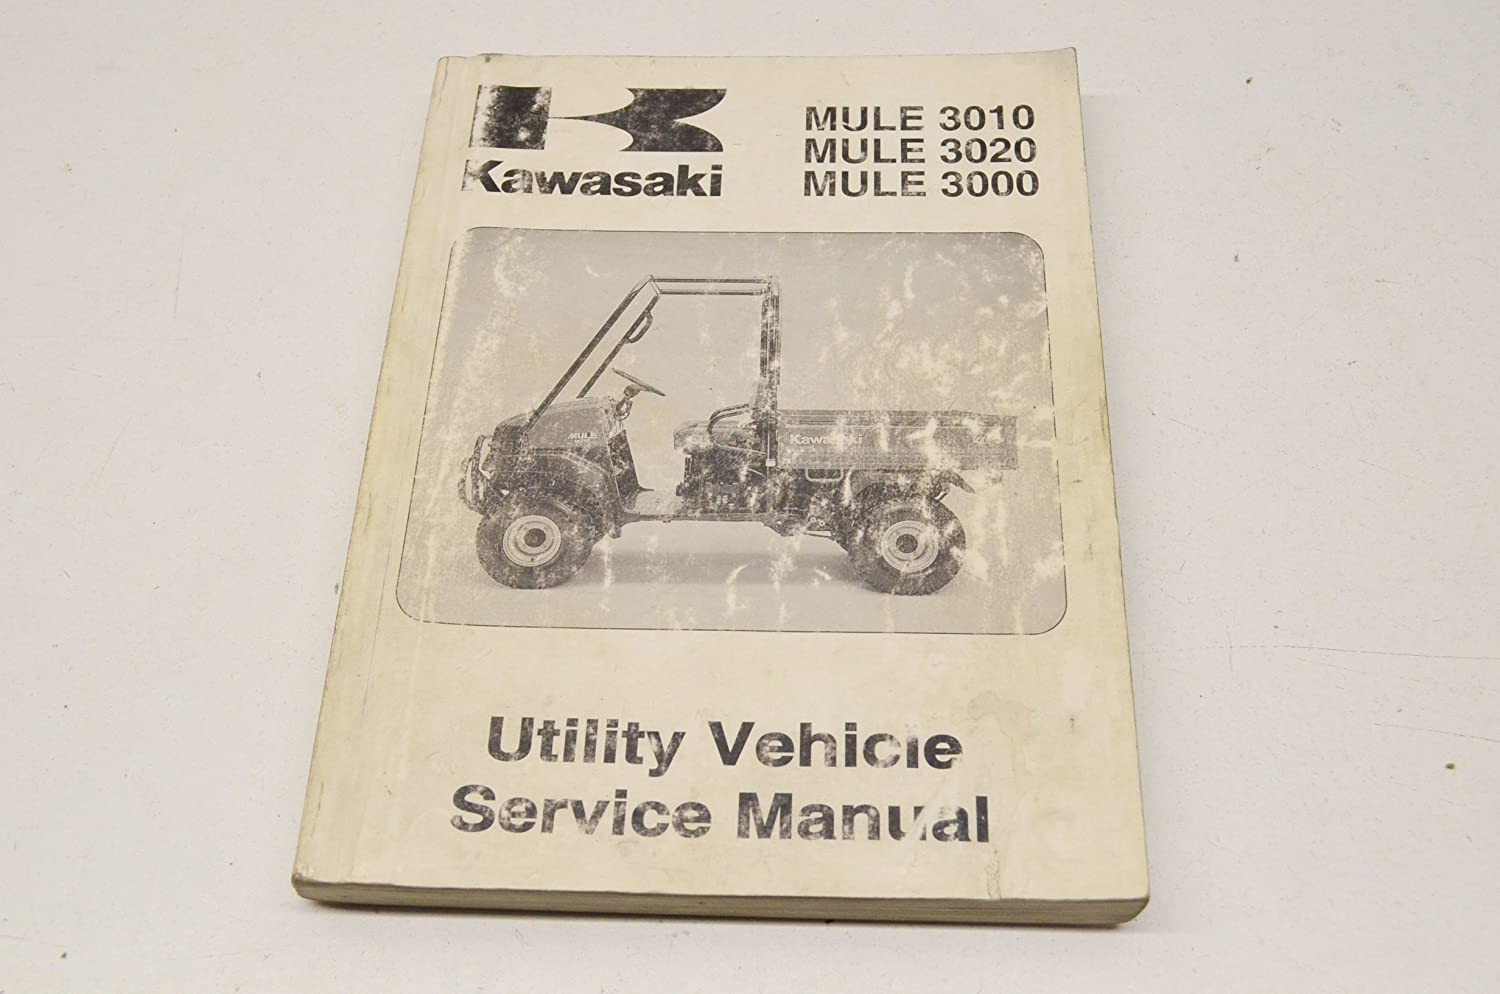 Amazon.com: Kawasaki 99924-1262-01 Service Manual Mule 01 3010, 3020, 3000  QTY 1: Automotive